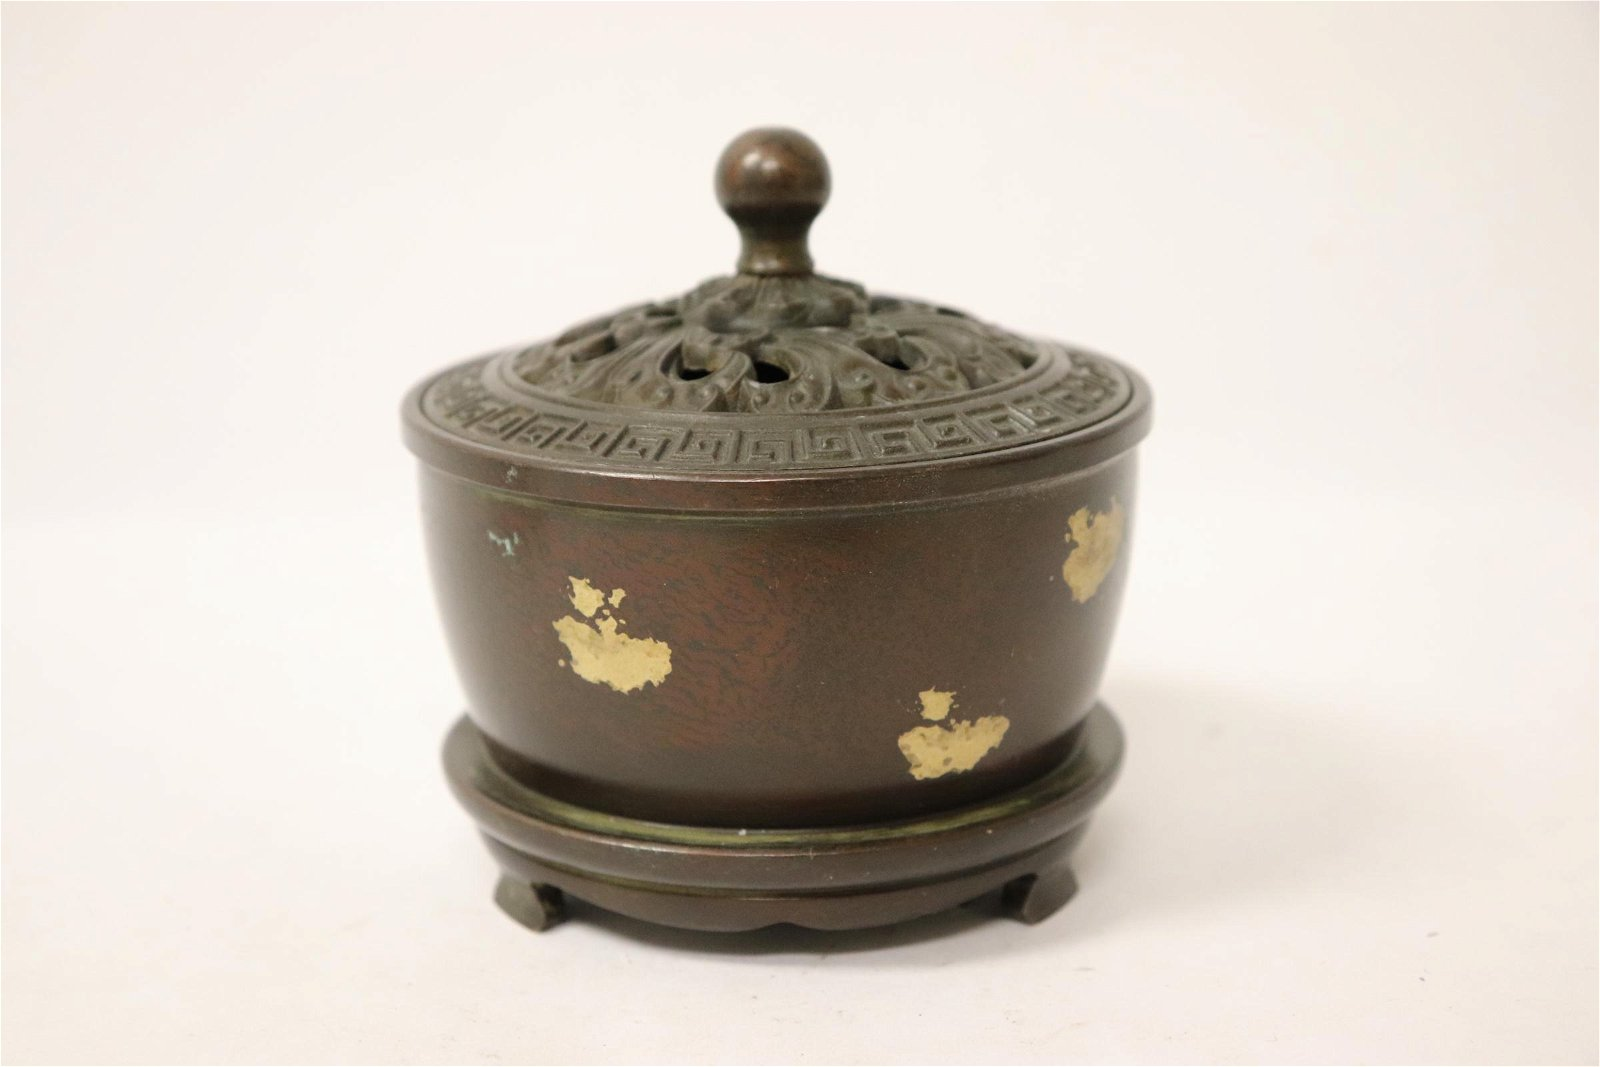 A heavy Chinese bronze covered censer